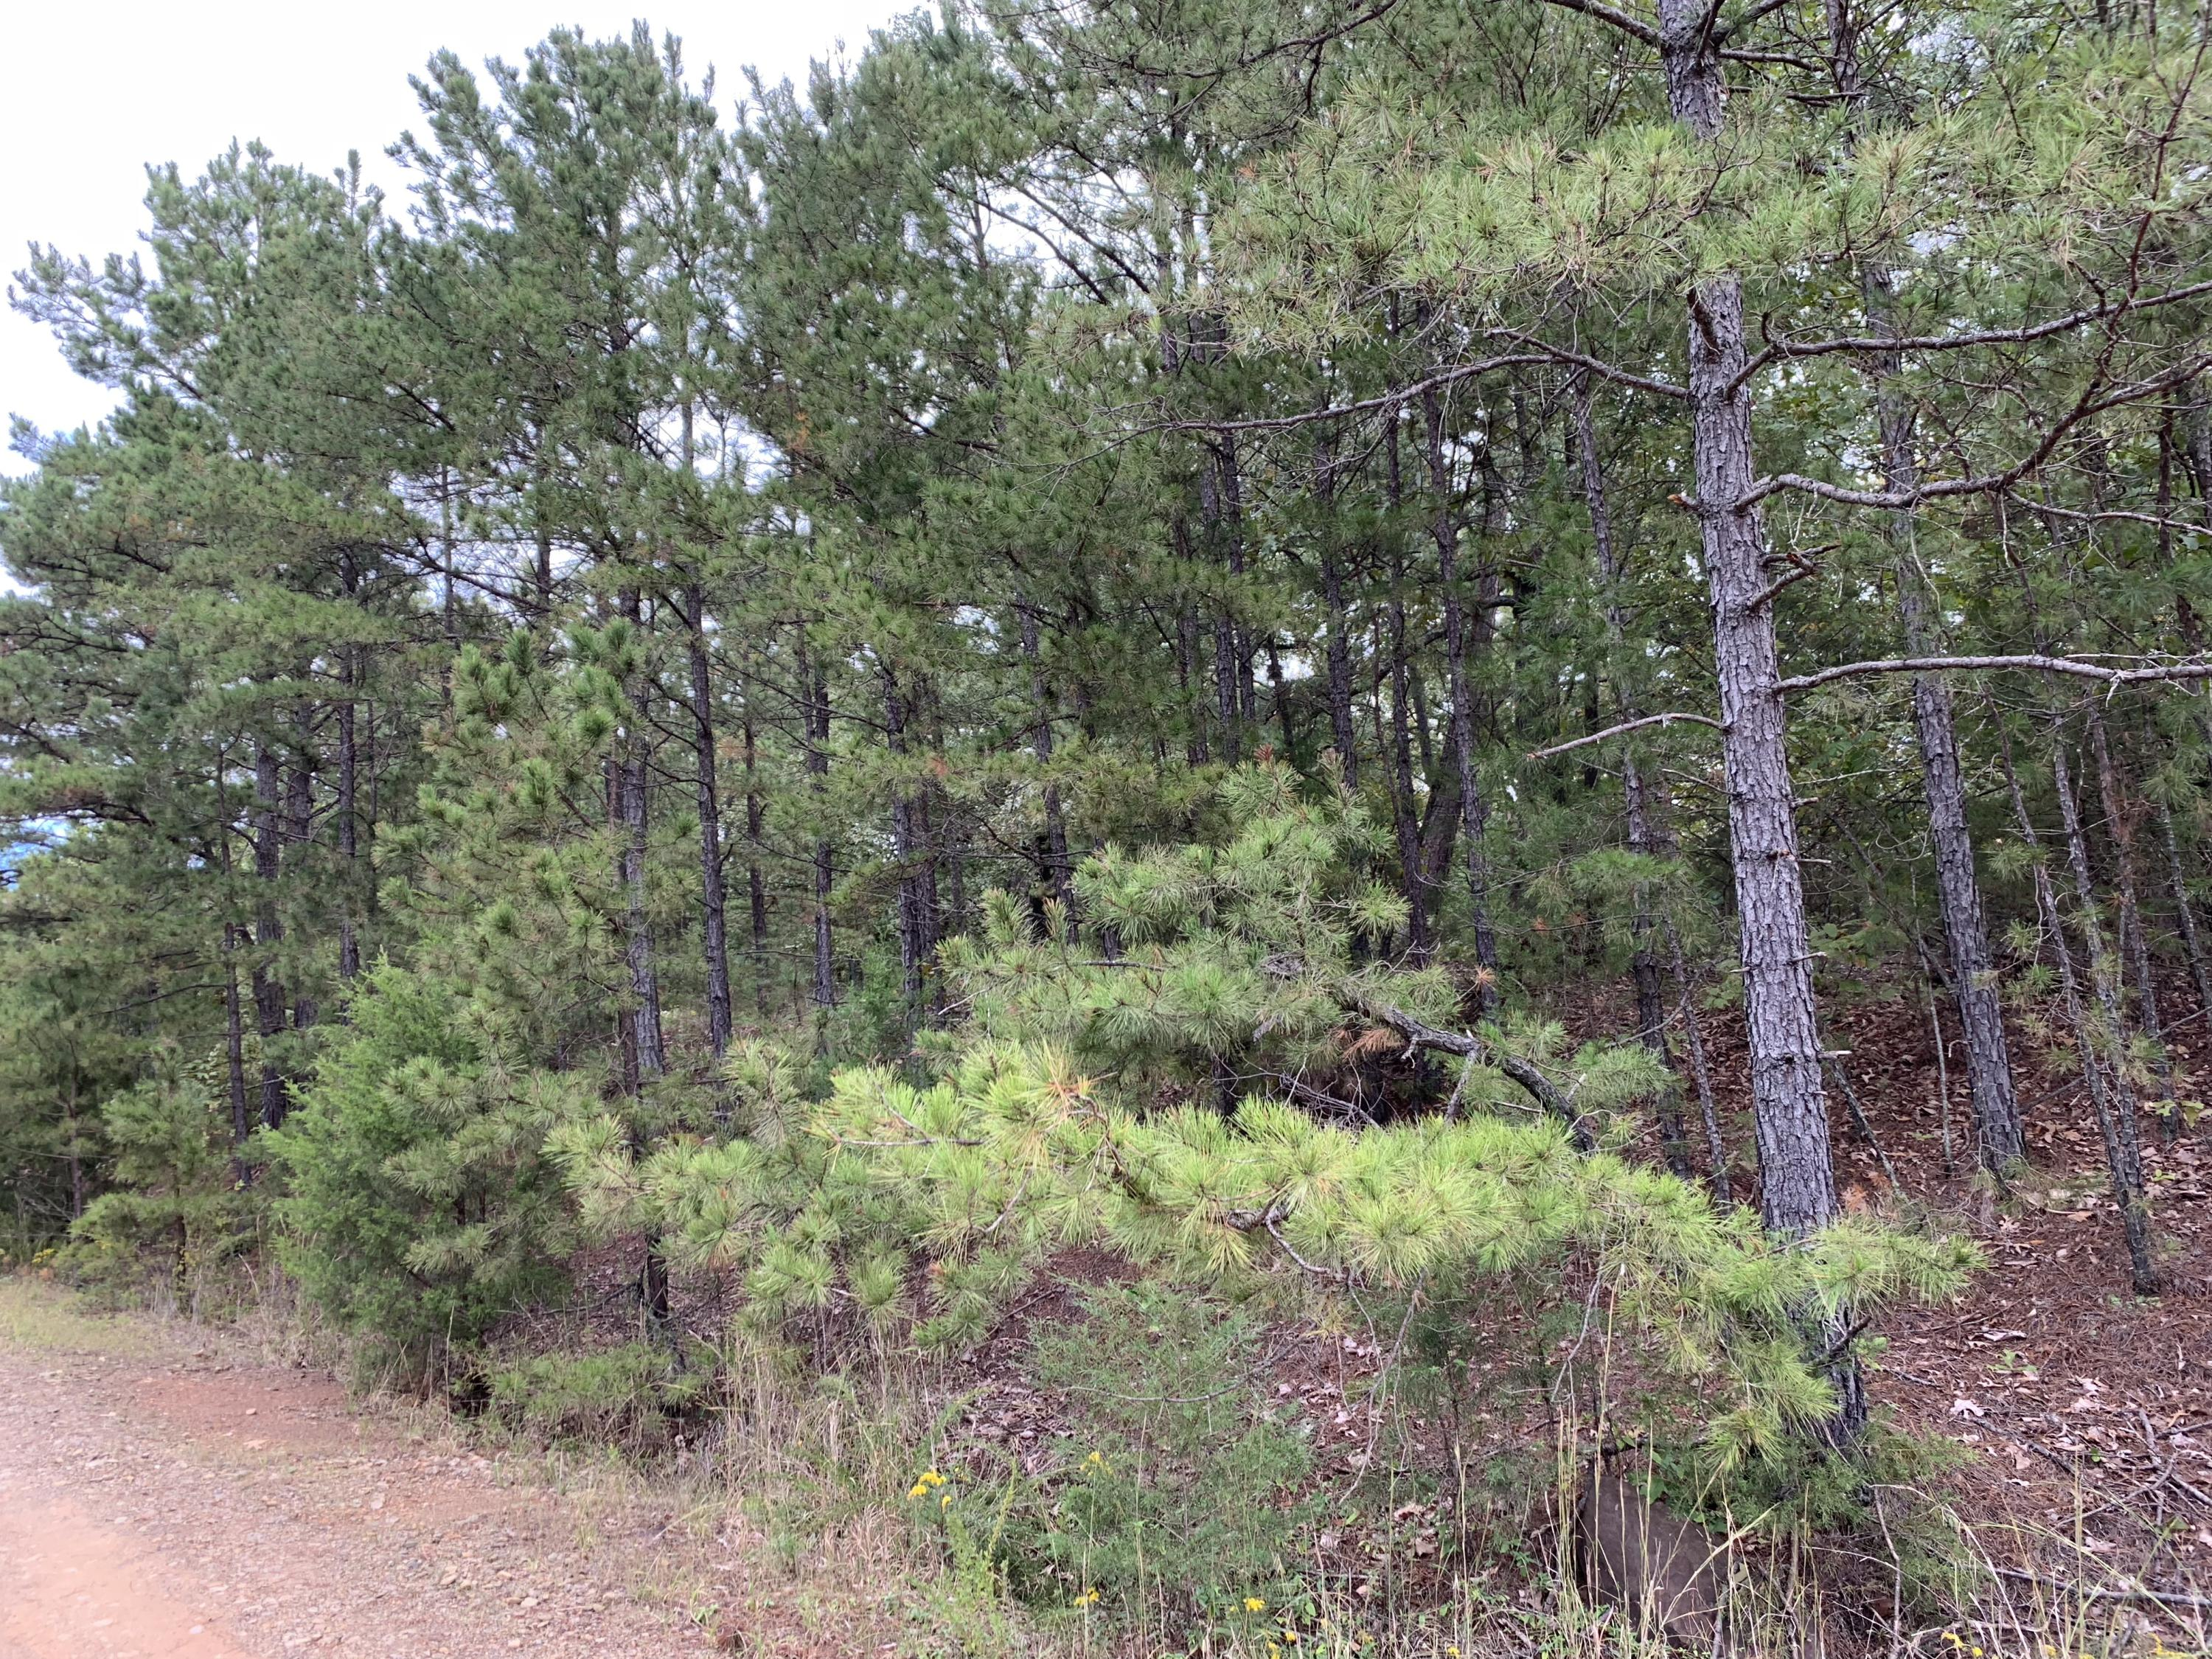 Large photo 2 of land for sale at  Bennett Orchard Estates Lots , London, AR, listed by Coldwell Banker Premier Realty